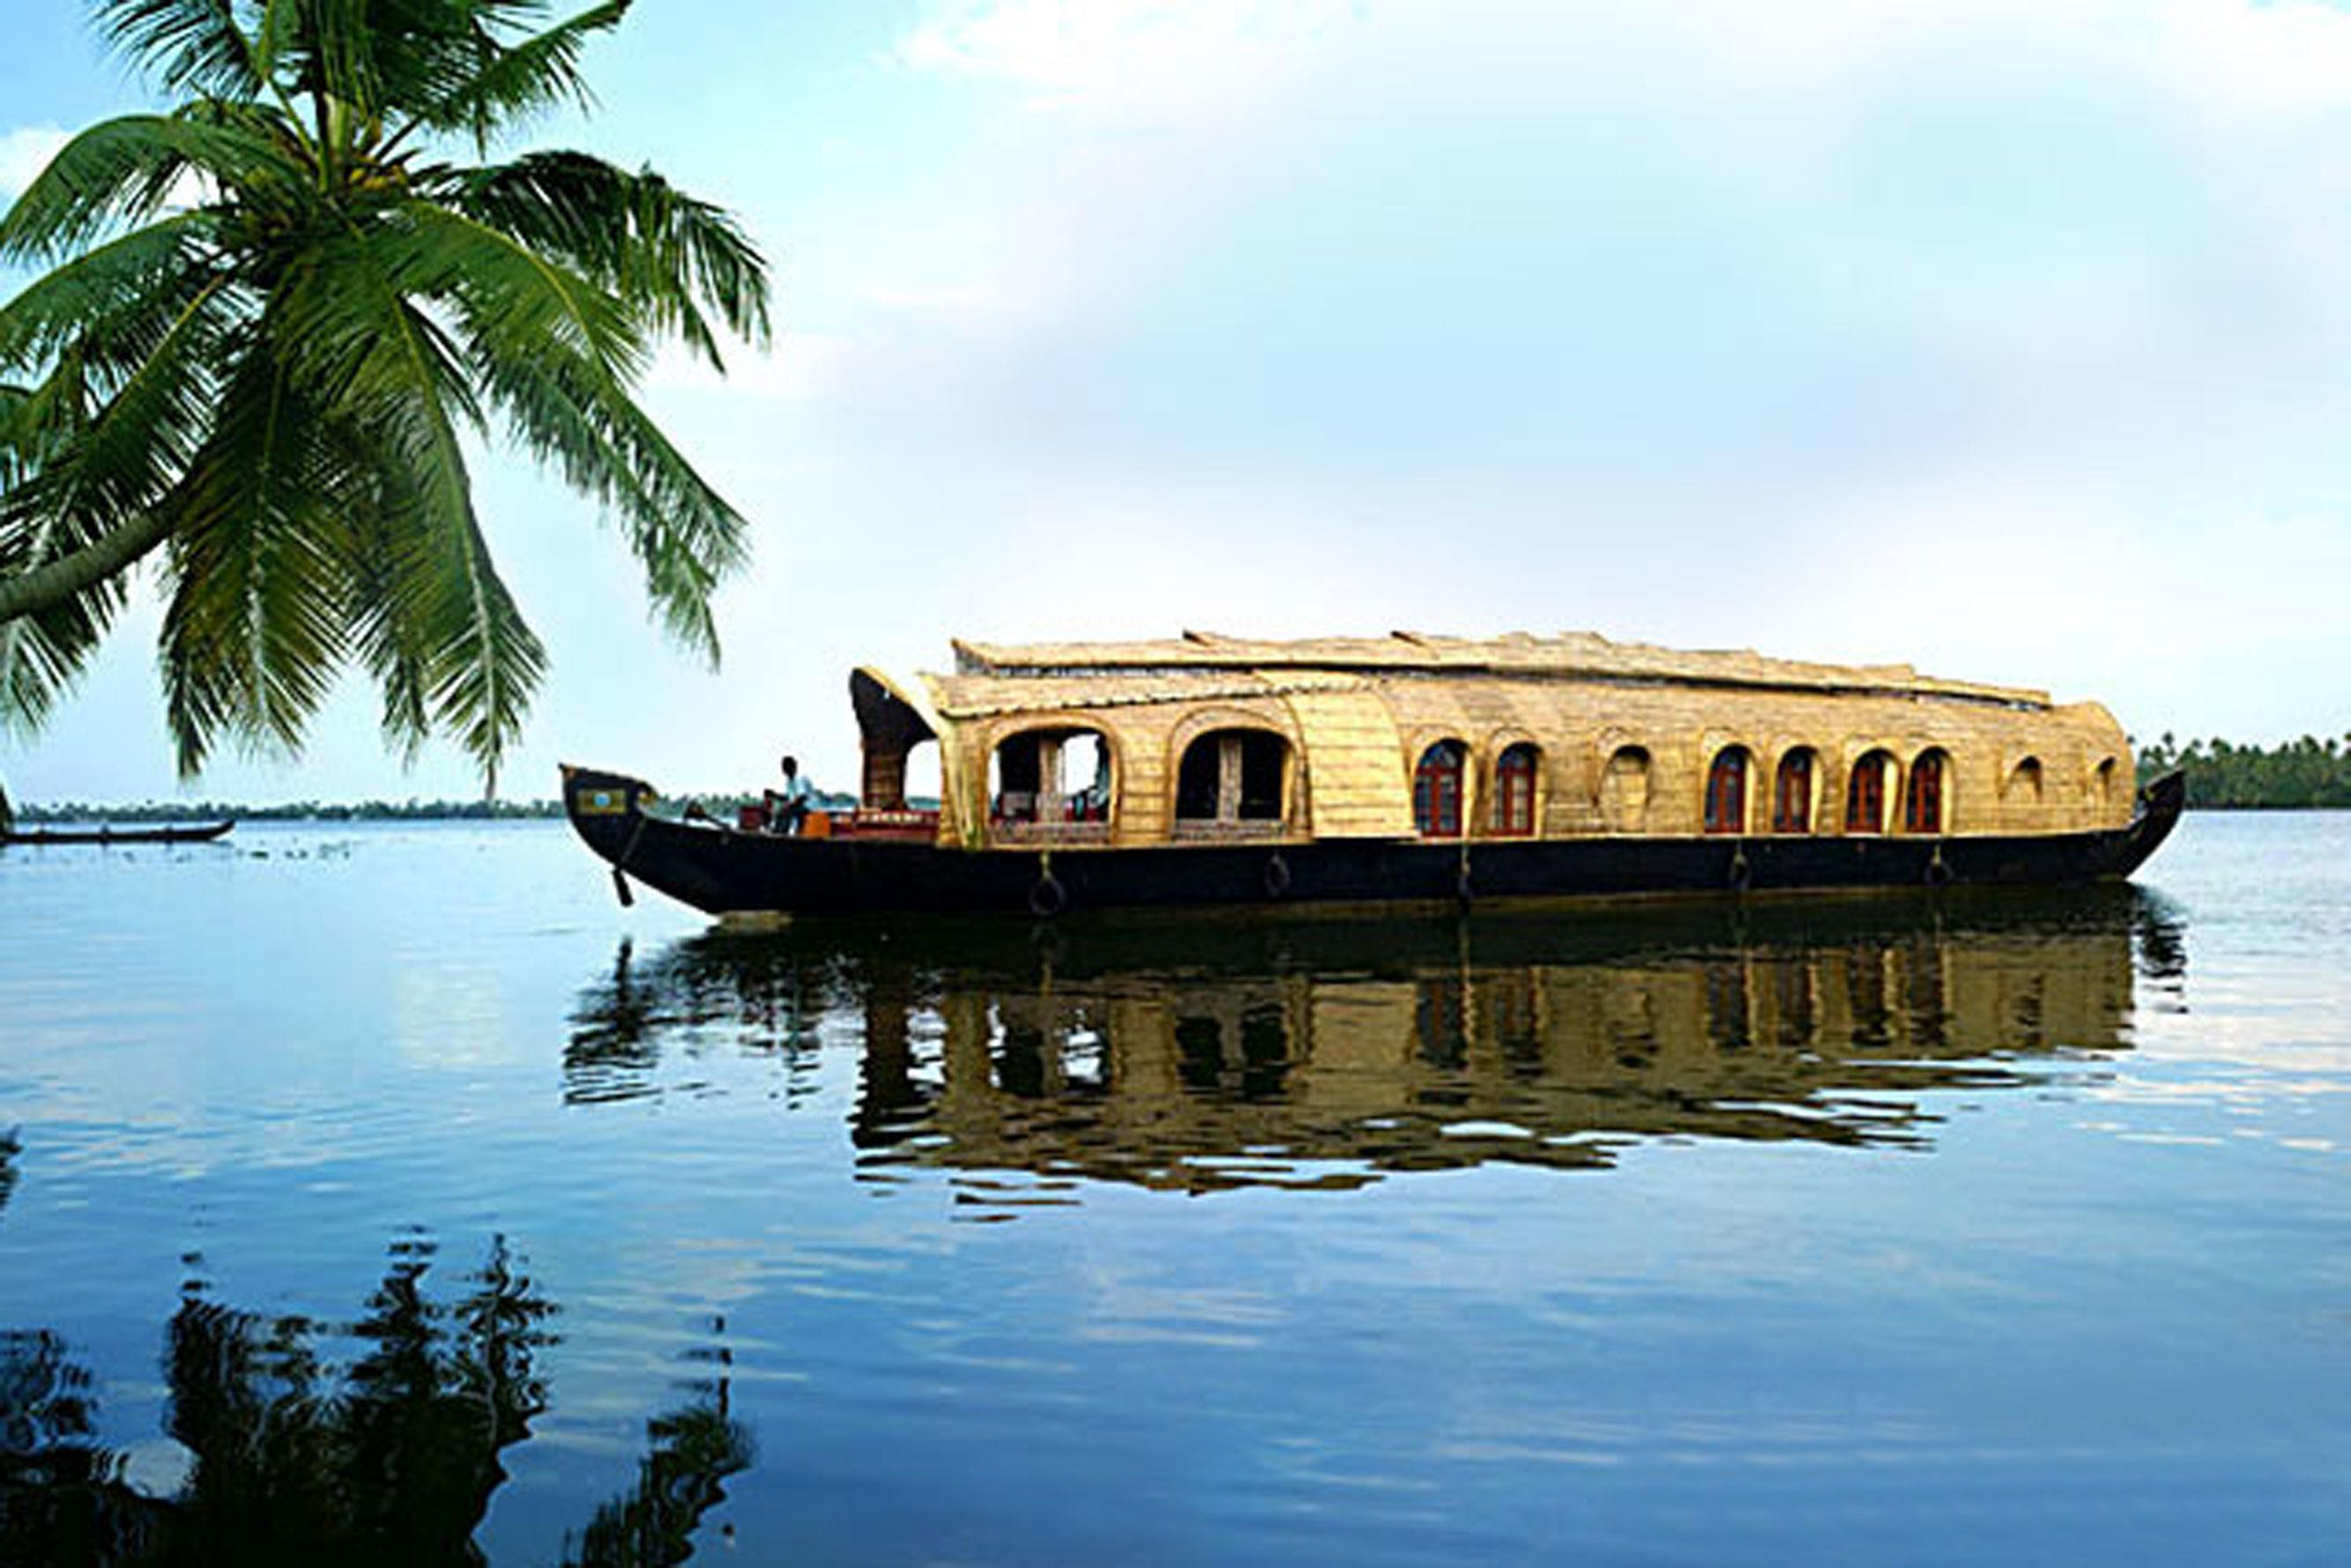 south india cultural tour with backwater